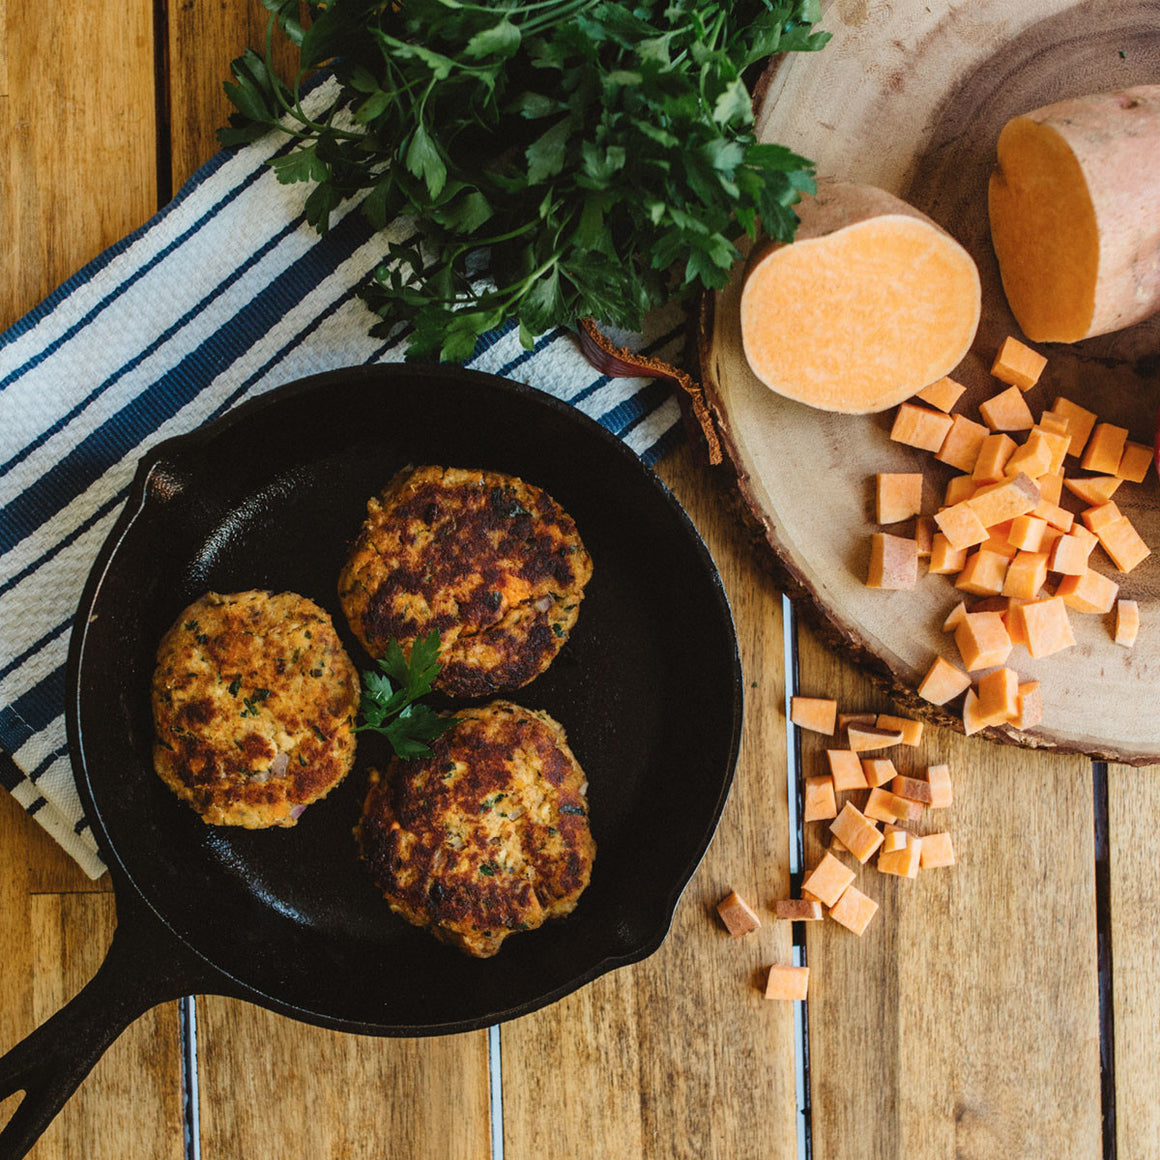 Grain-free salmon & sweet potato cakes (W30)